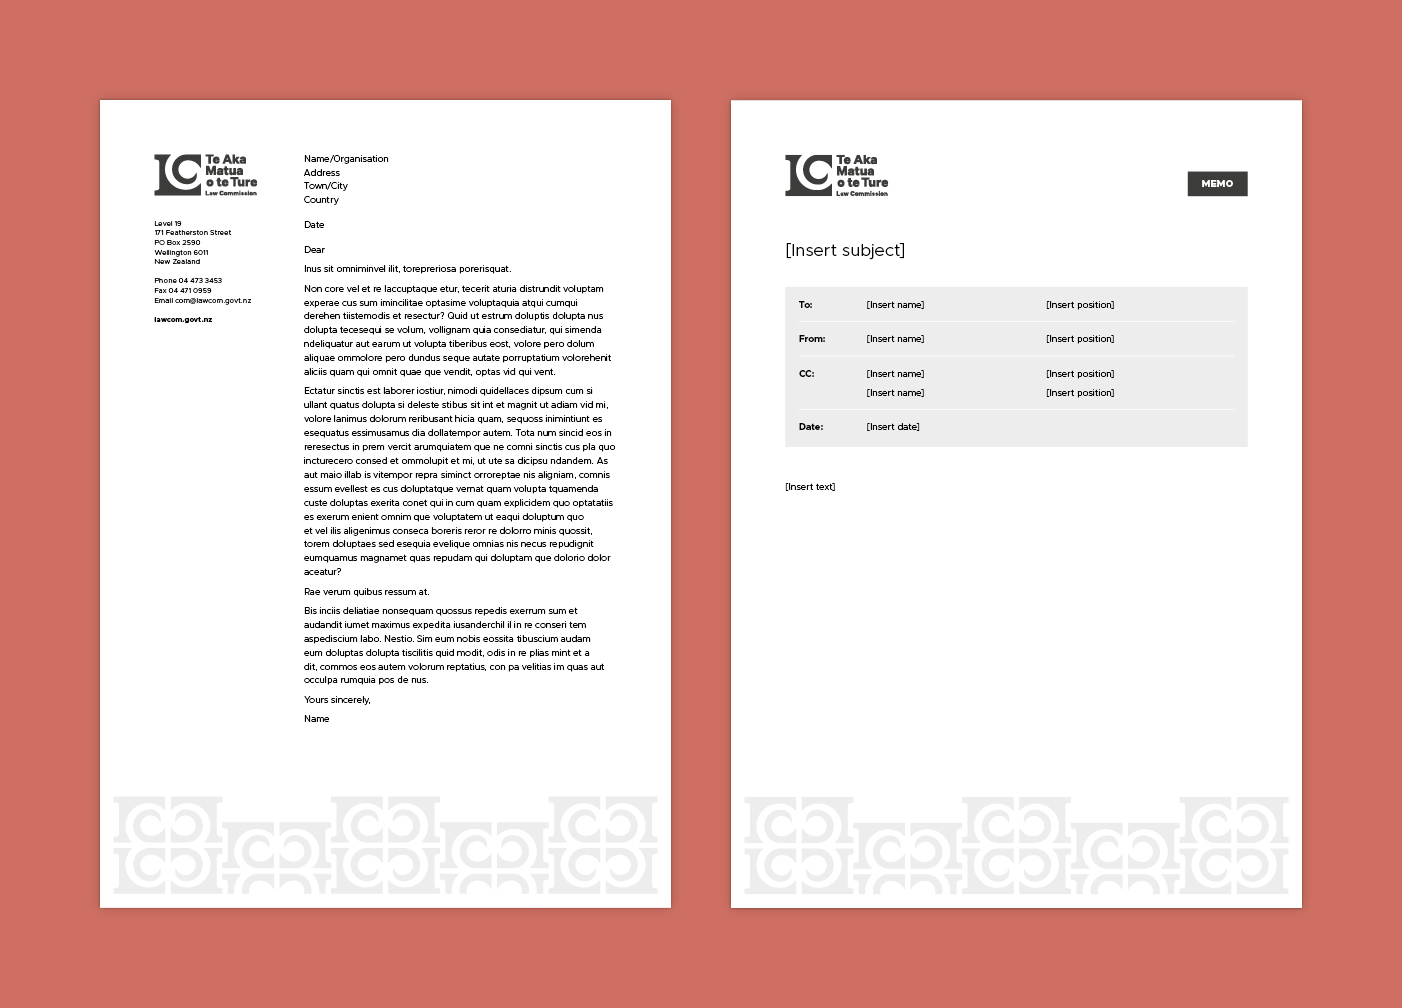 Law Commission brand documents